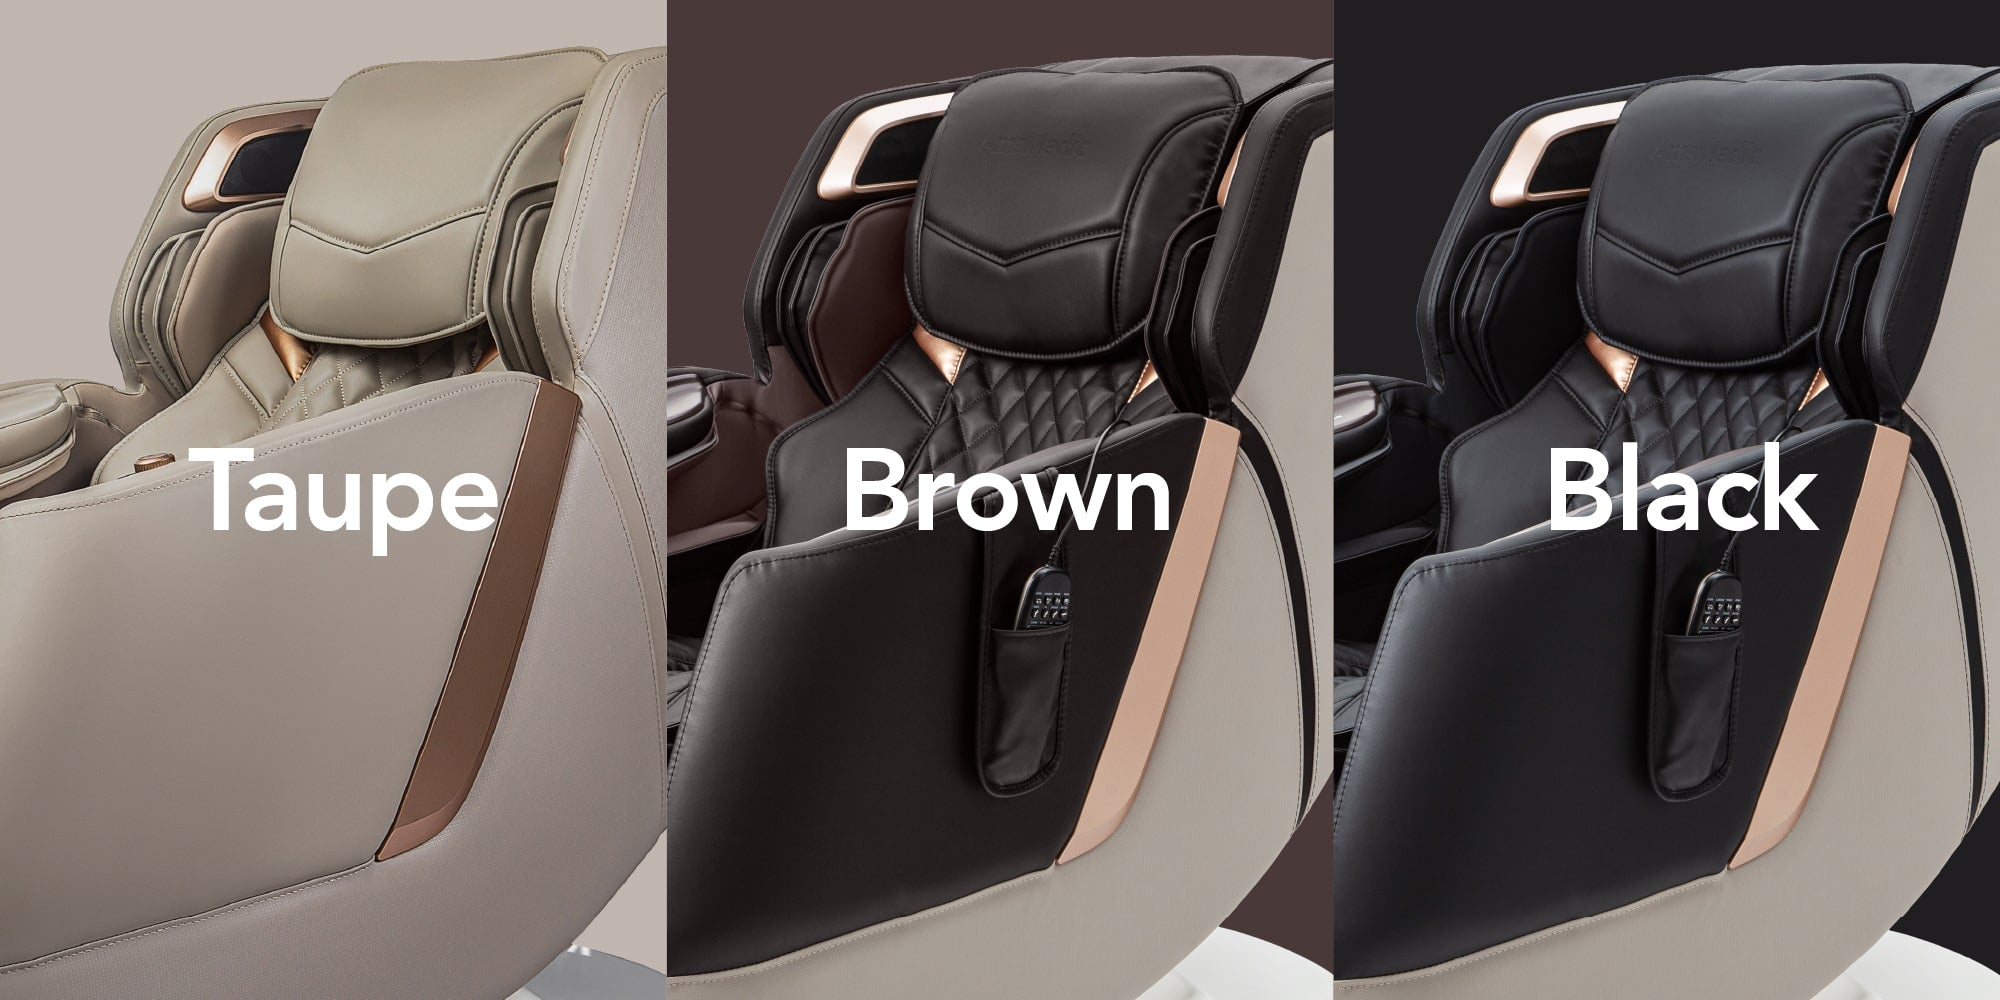 Colors: taupe, brown and black